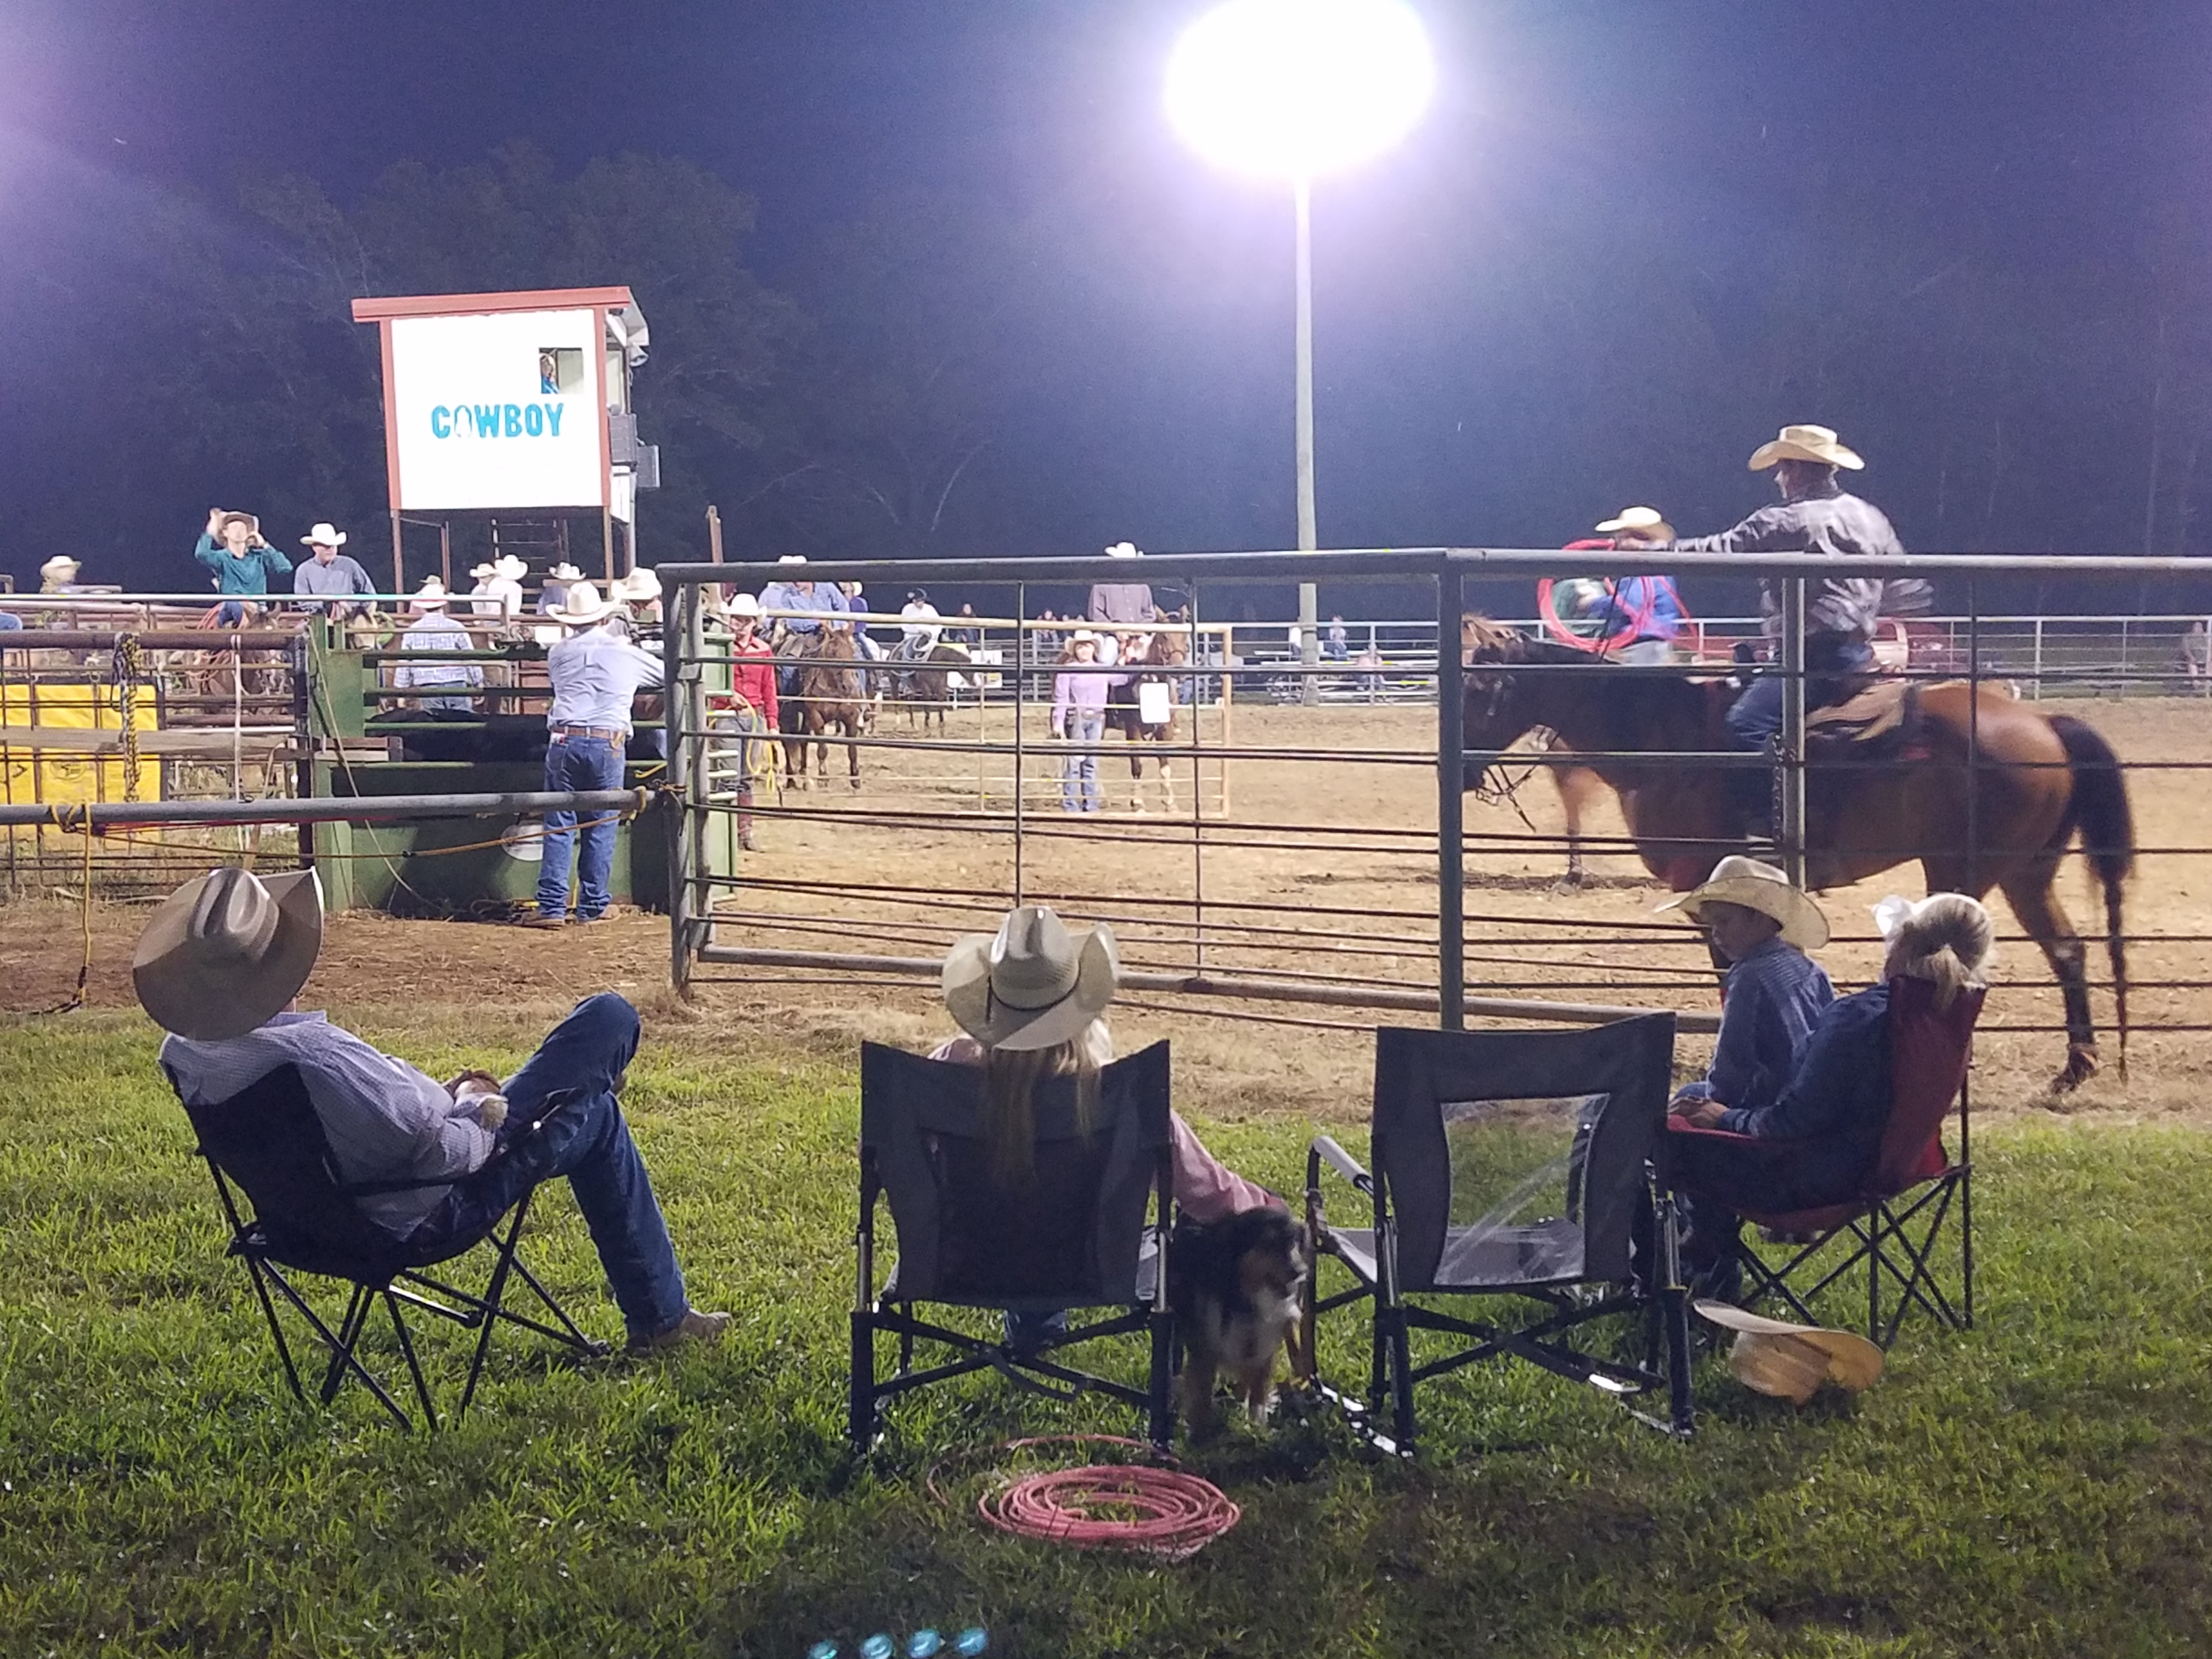 A night of Rodeo